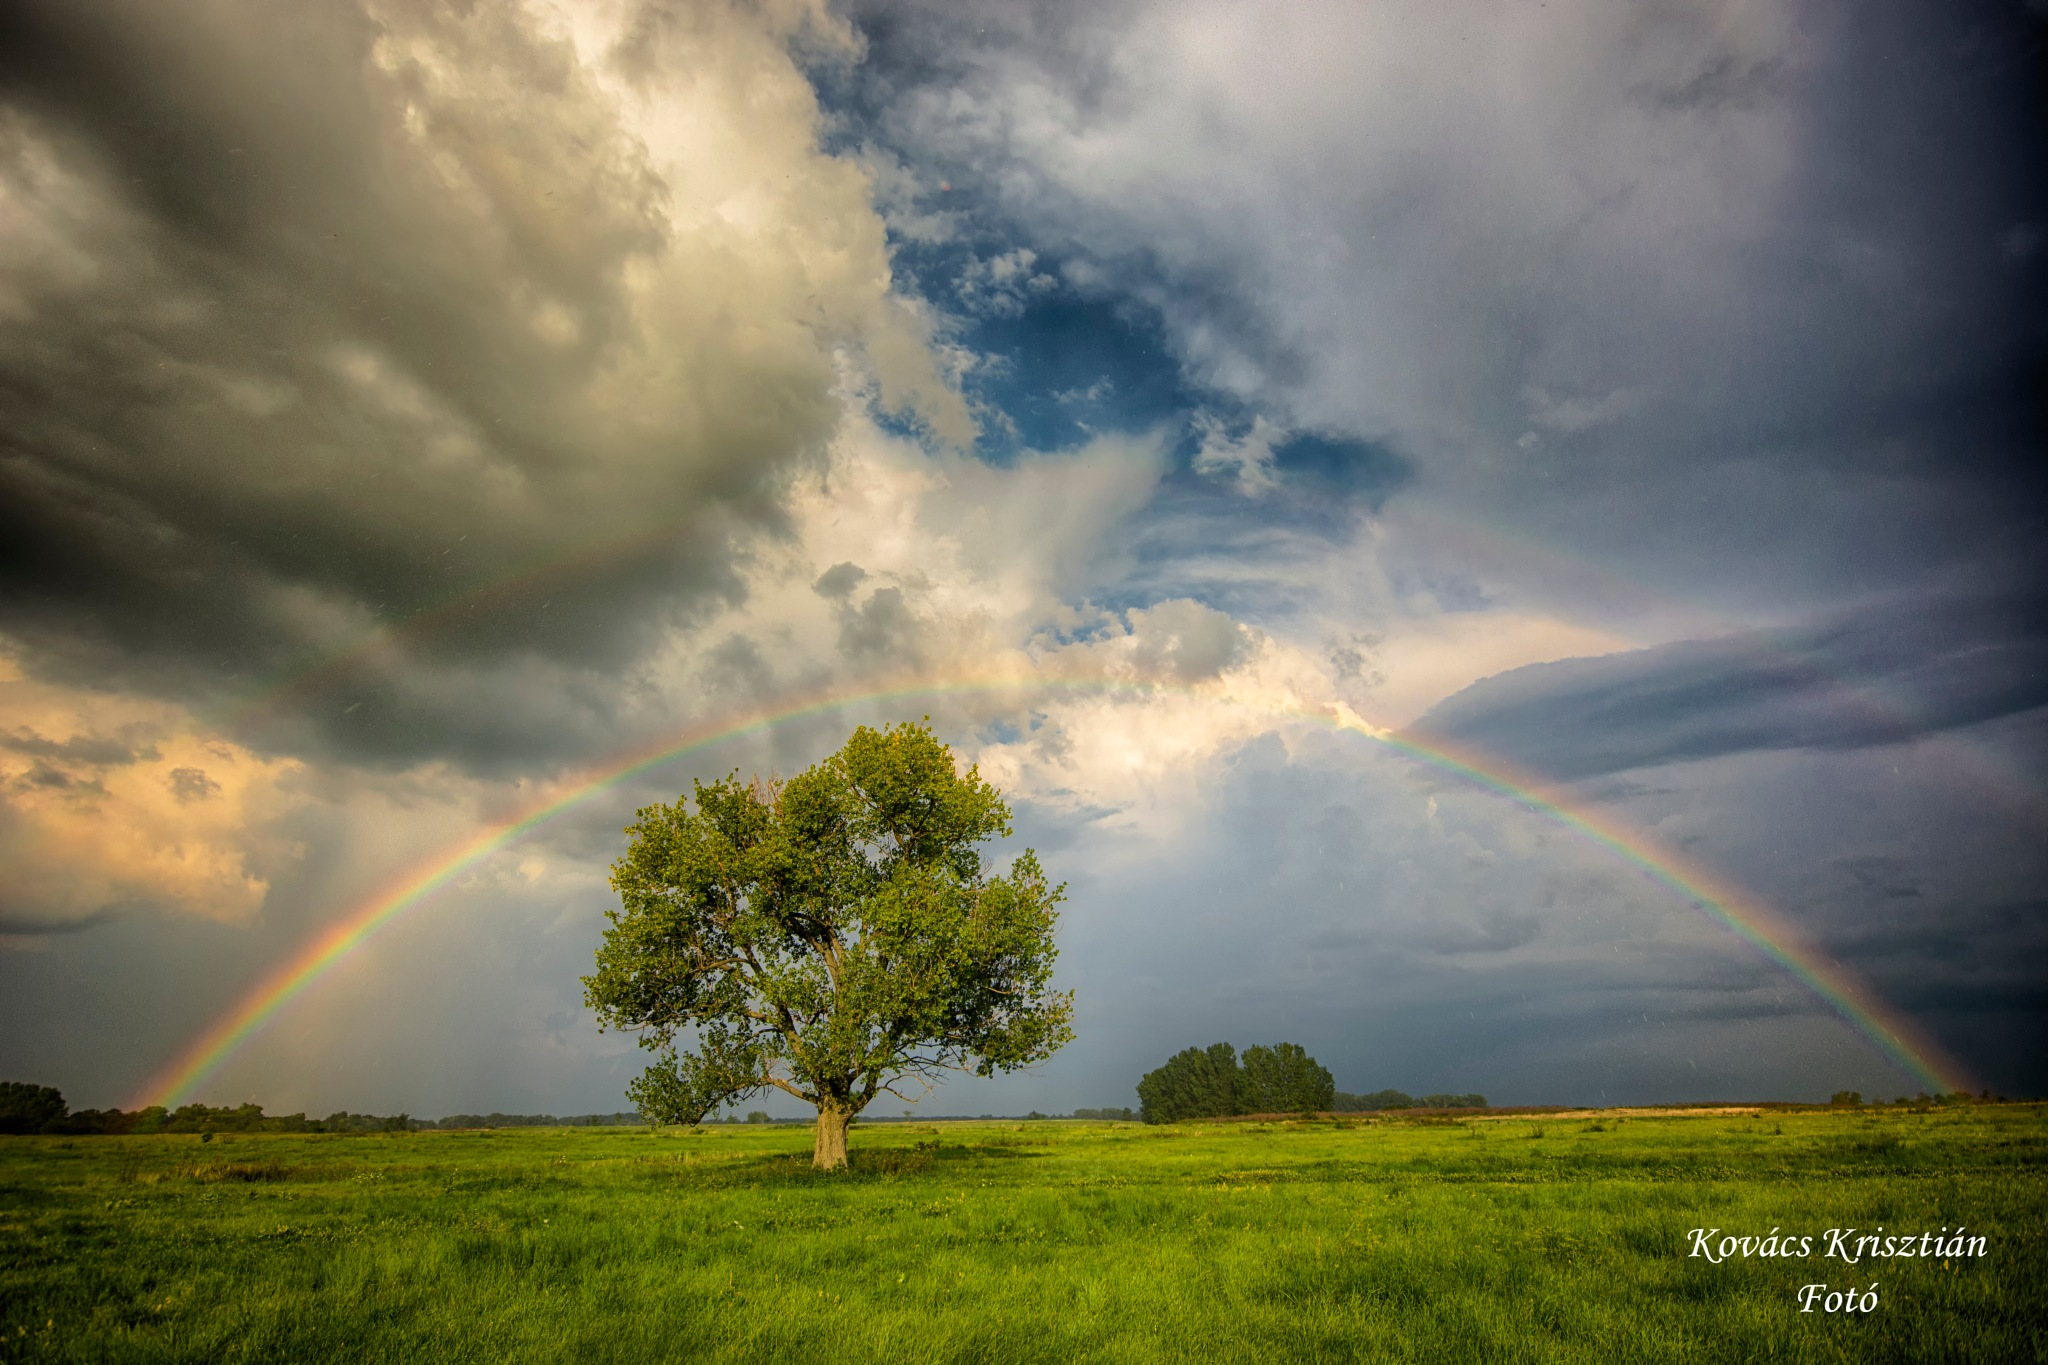 below the rainbow by Kovacs Krisztian